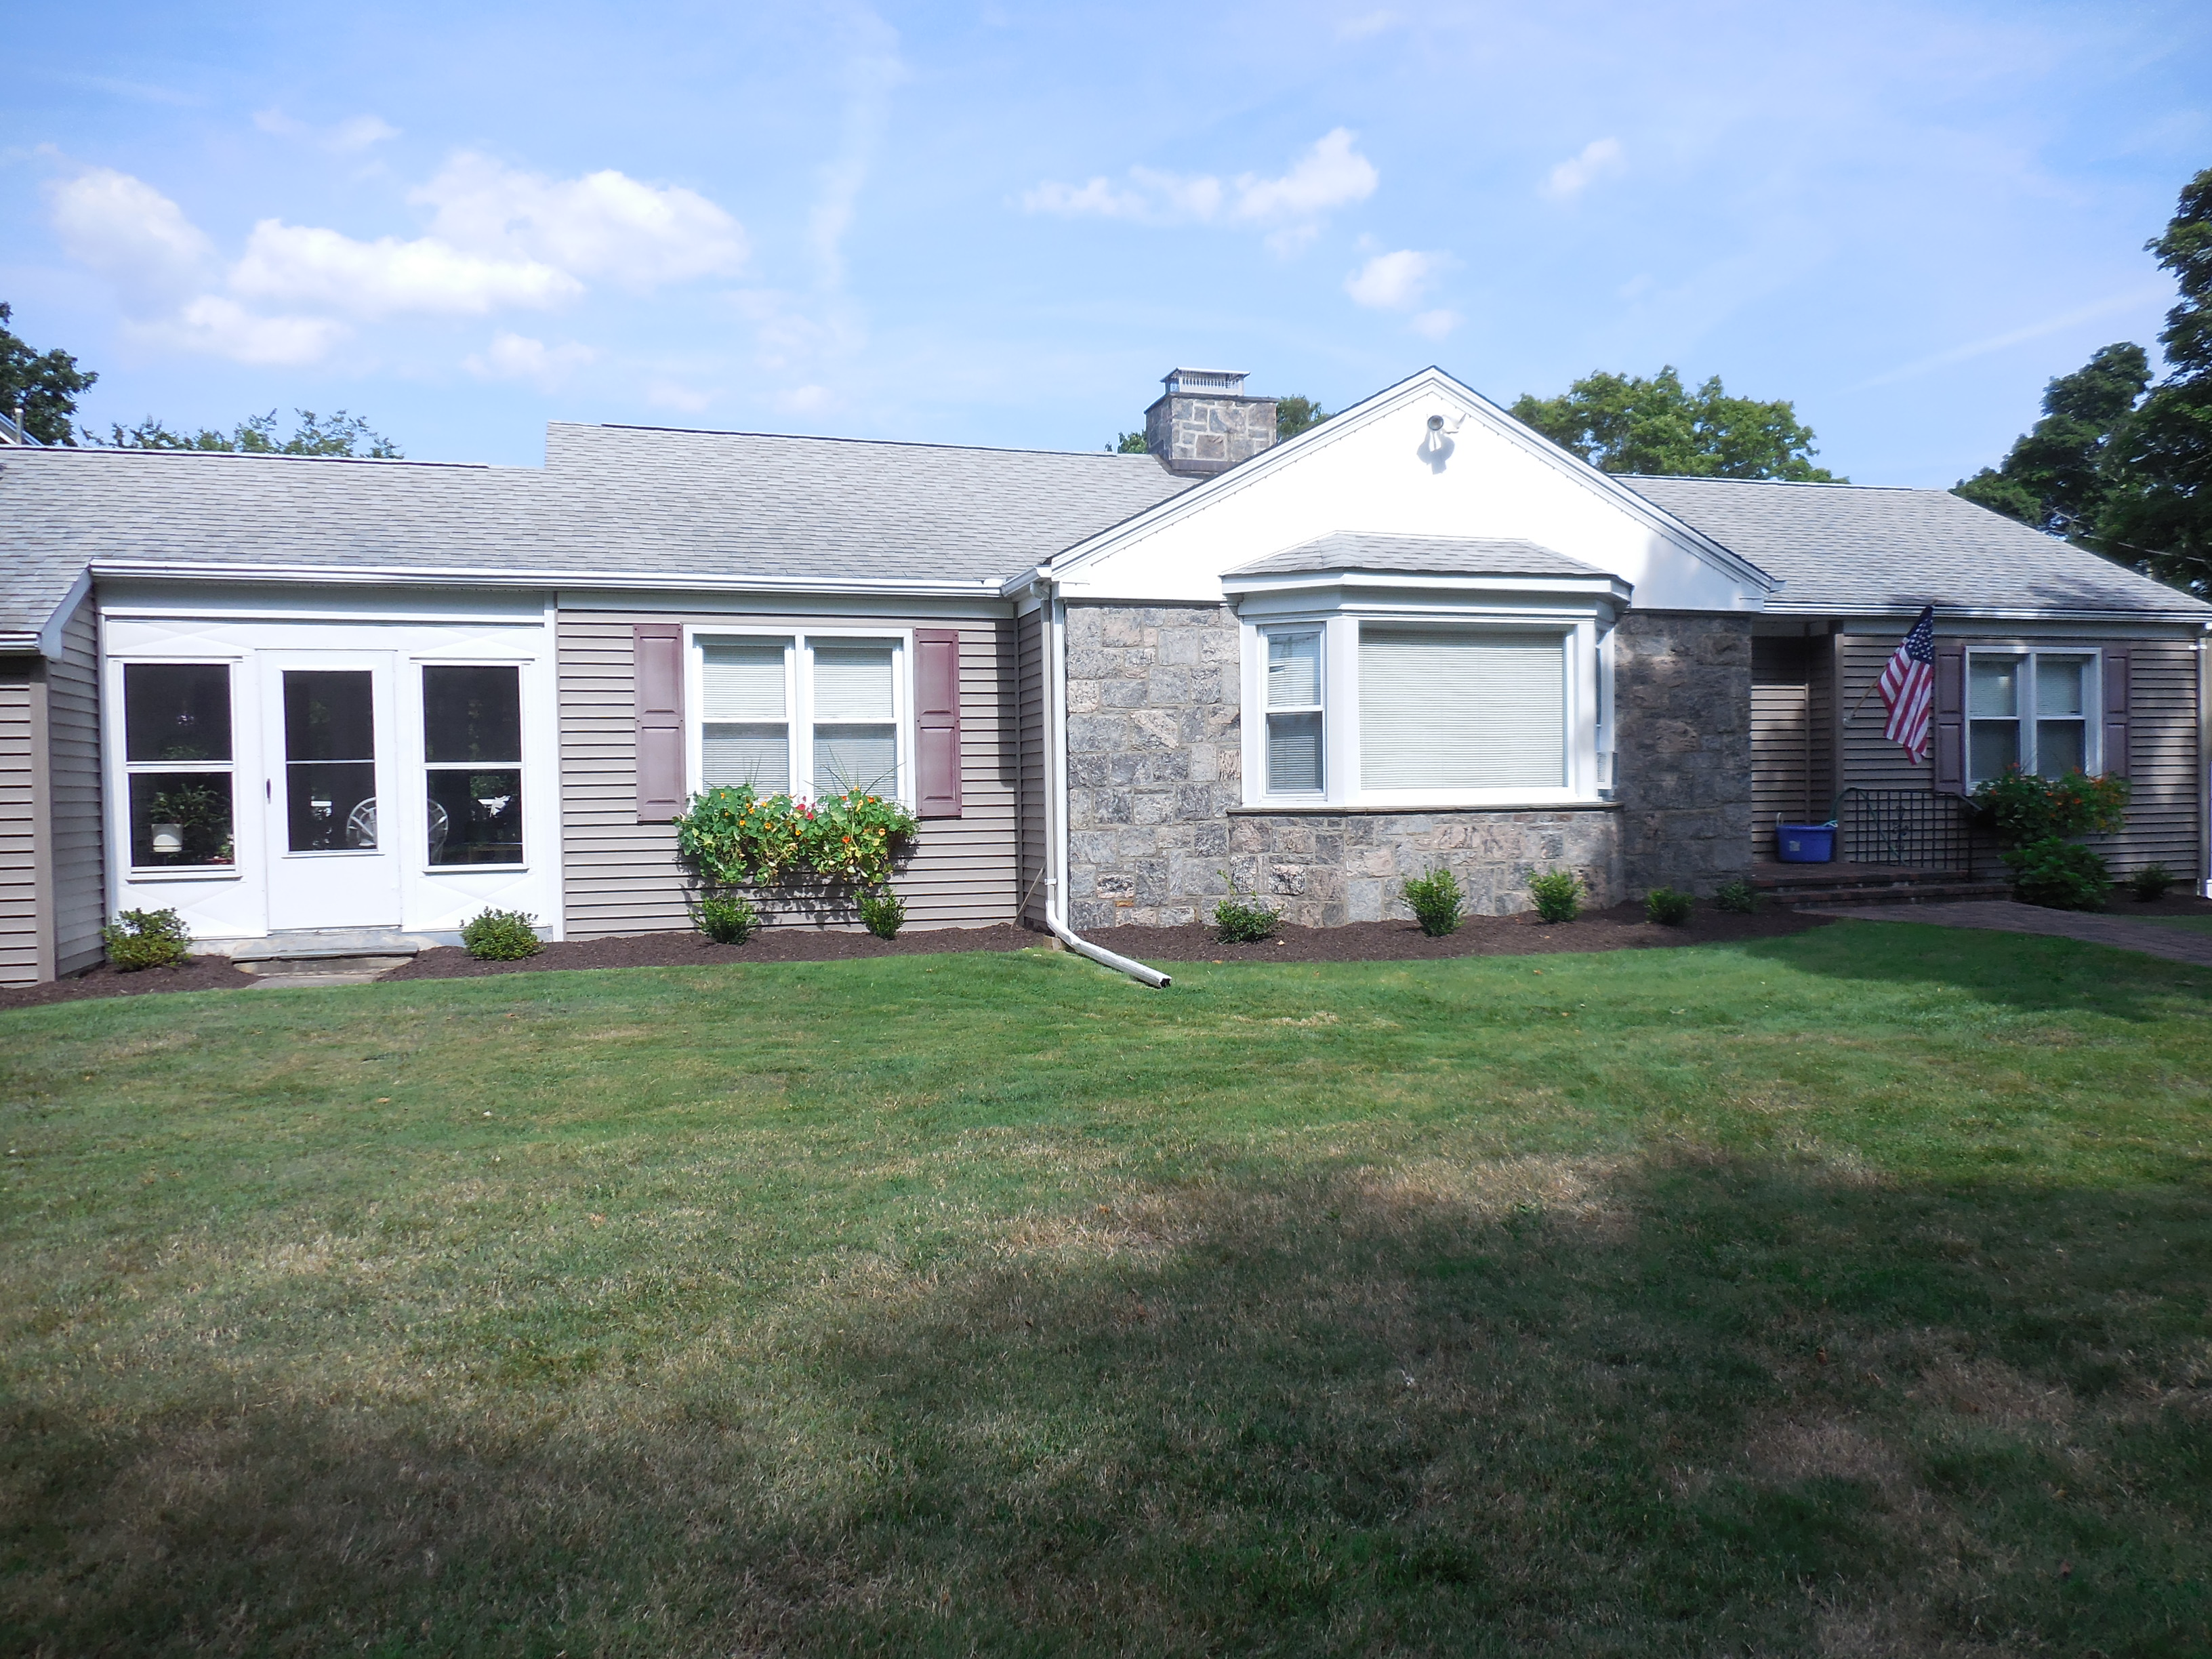 Single Family Home for Sale at Impeccably Maintained Ranch 41 Abbott Avenue Danbury, Connecticut, 06810 United States